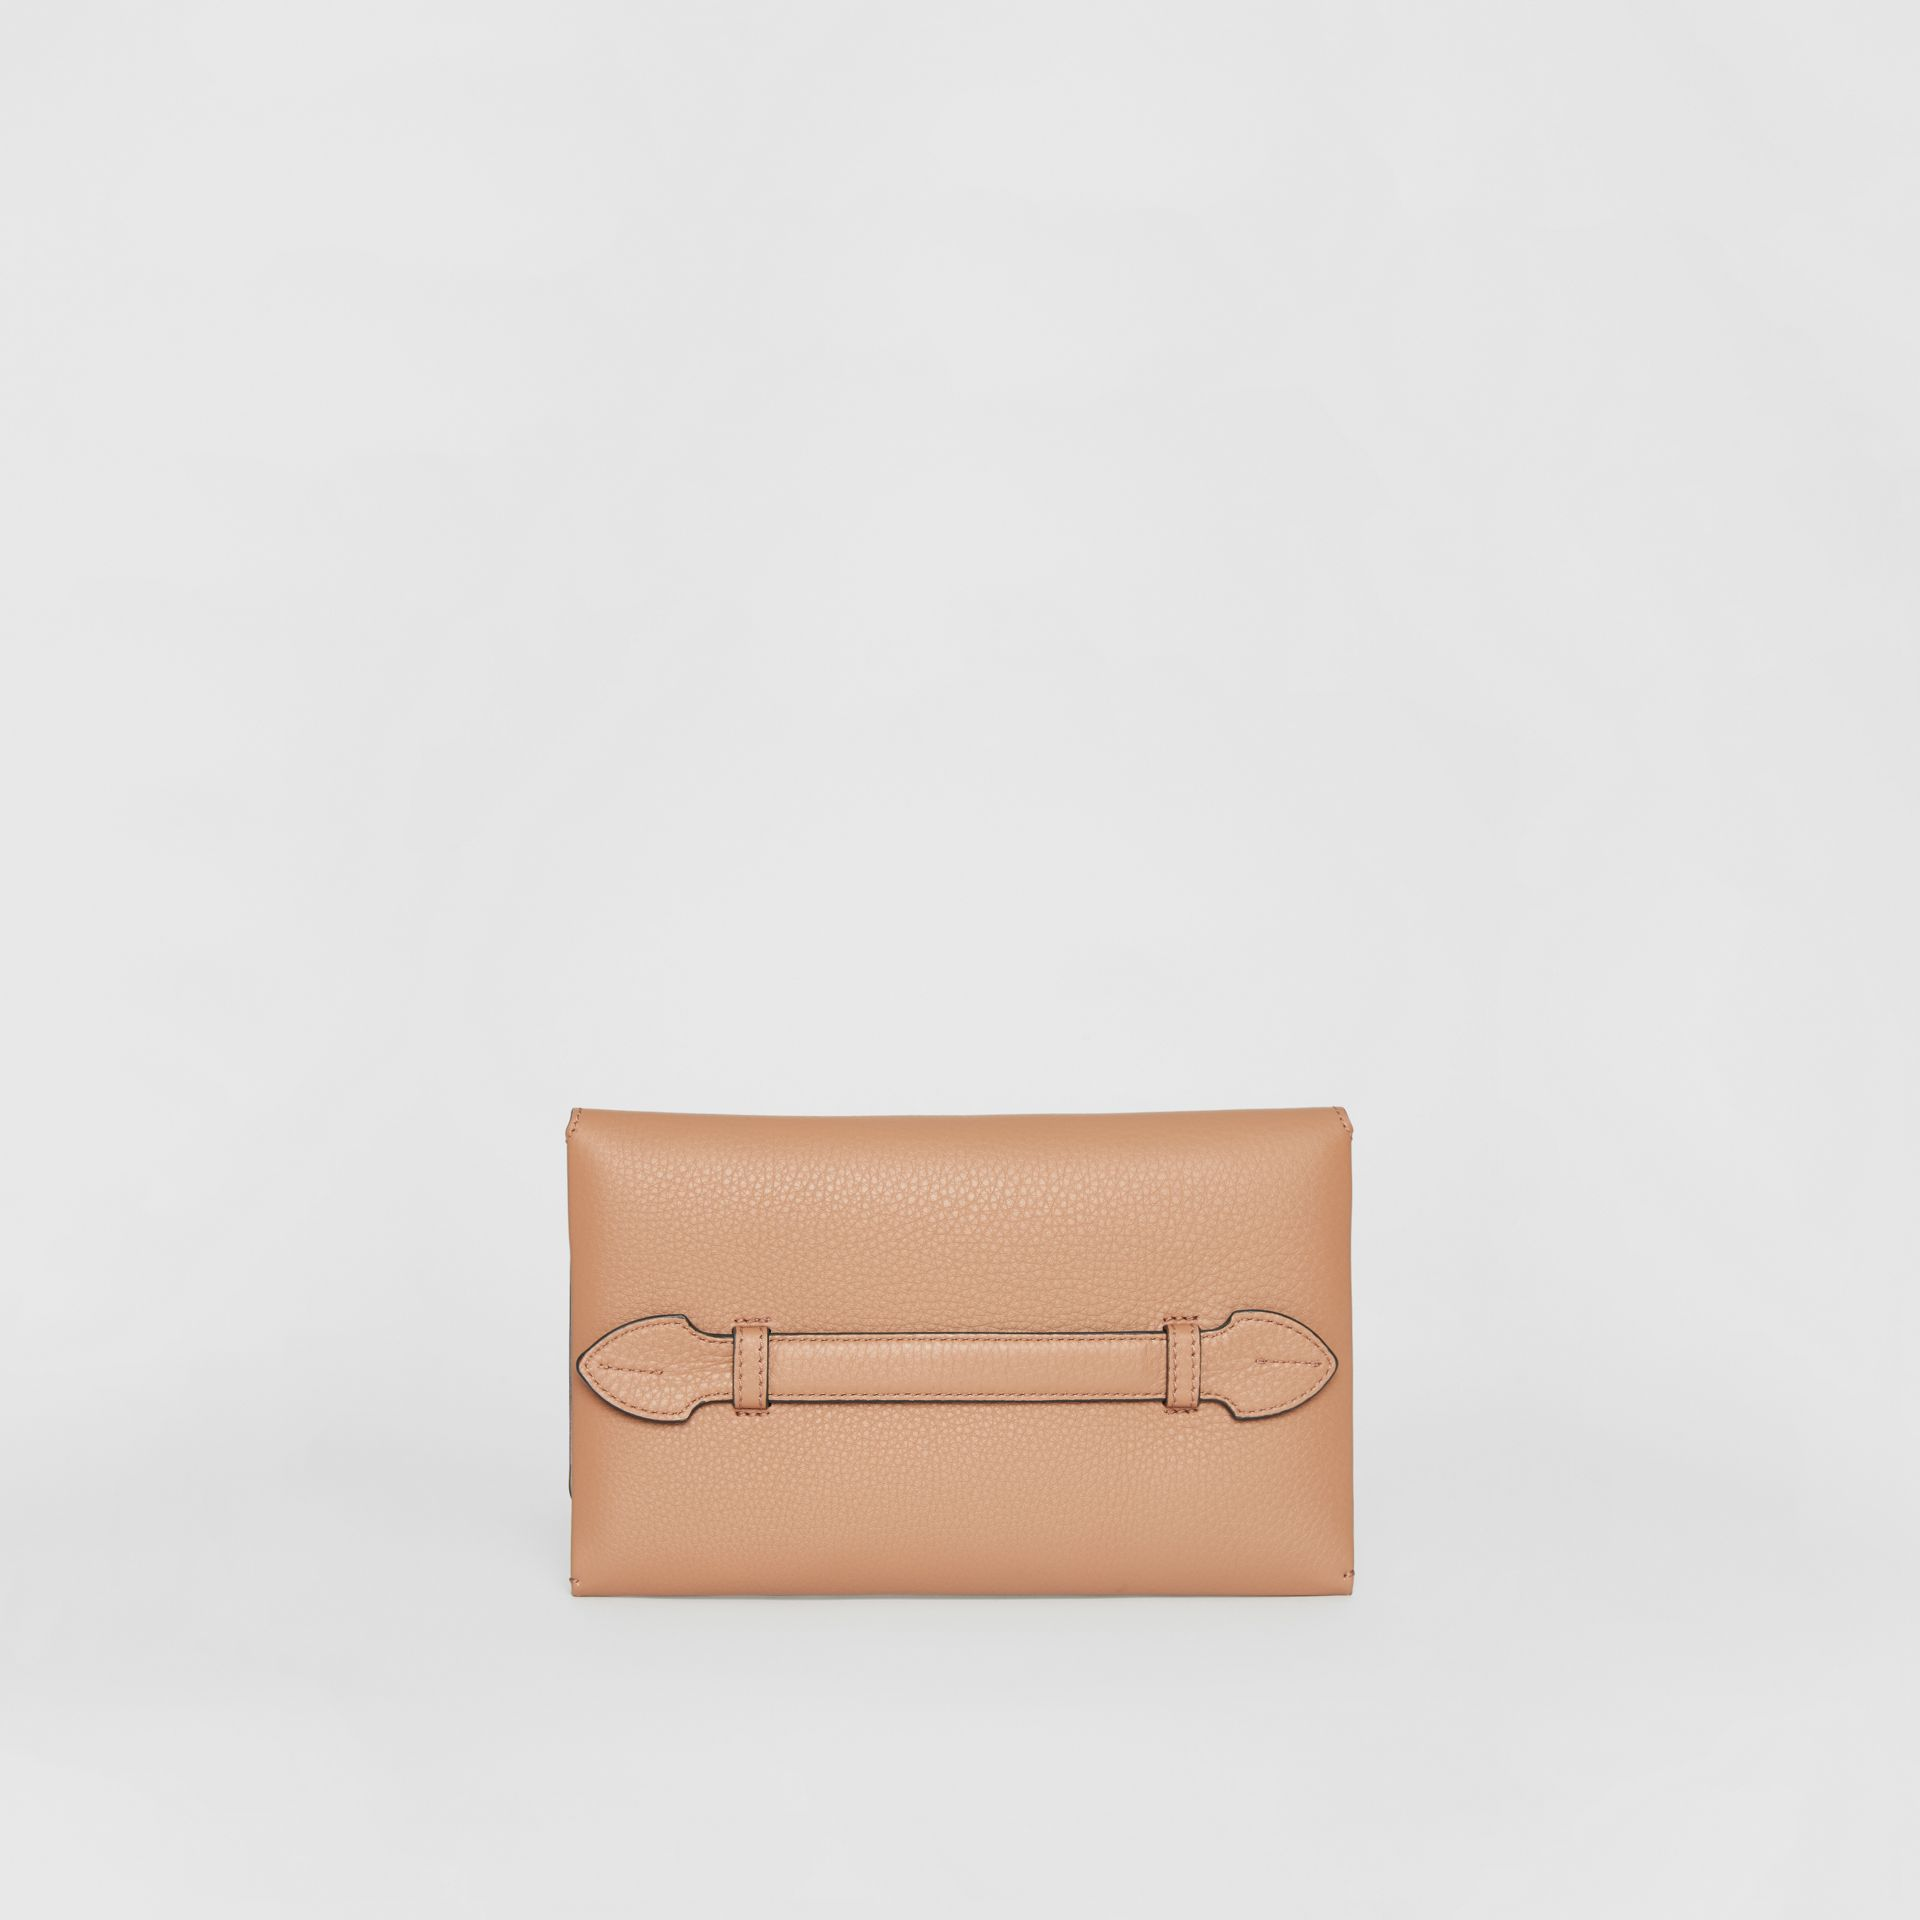 Two-tone Leather Wristlet Clutch in Light Camel - Women | Burberry Hong Kong - gallery image 5